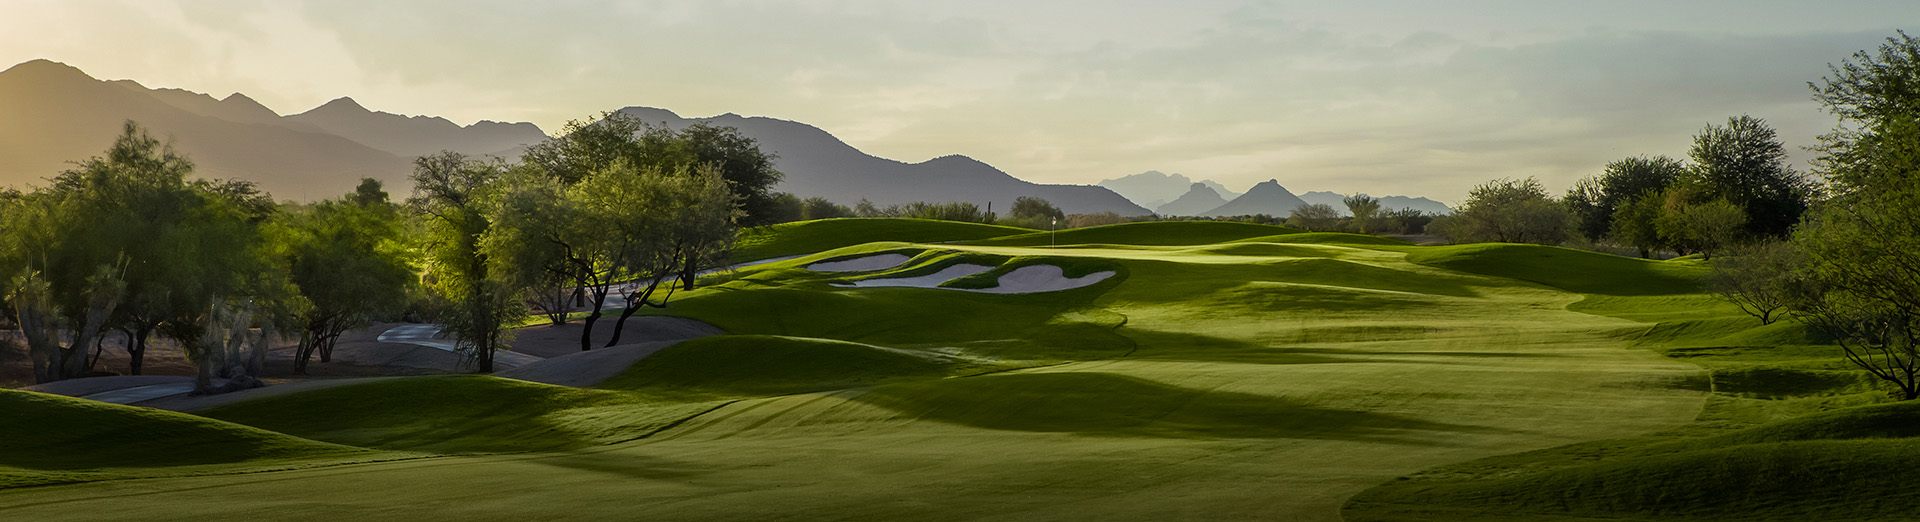 Scottsdale-Golf-Pano_Web